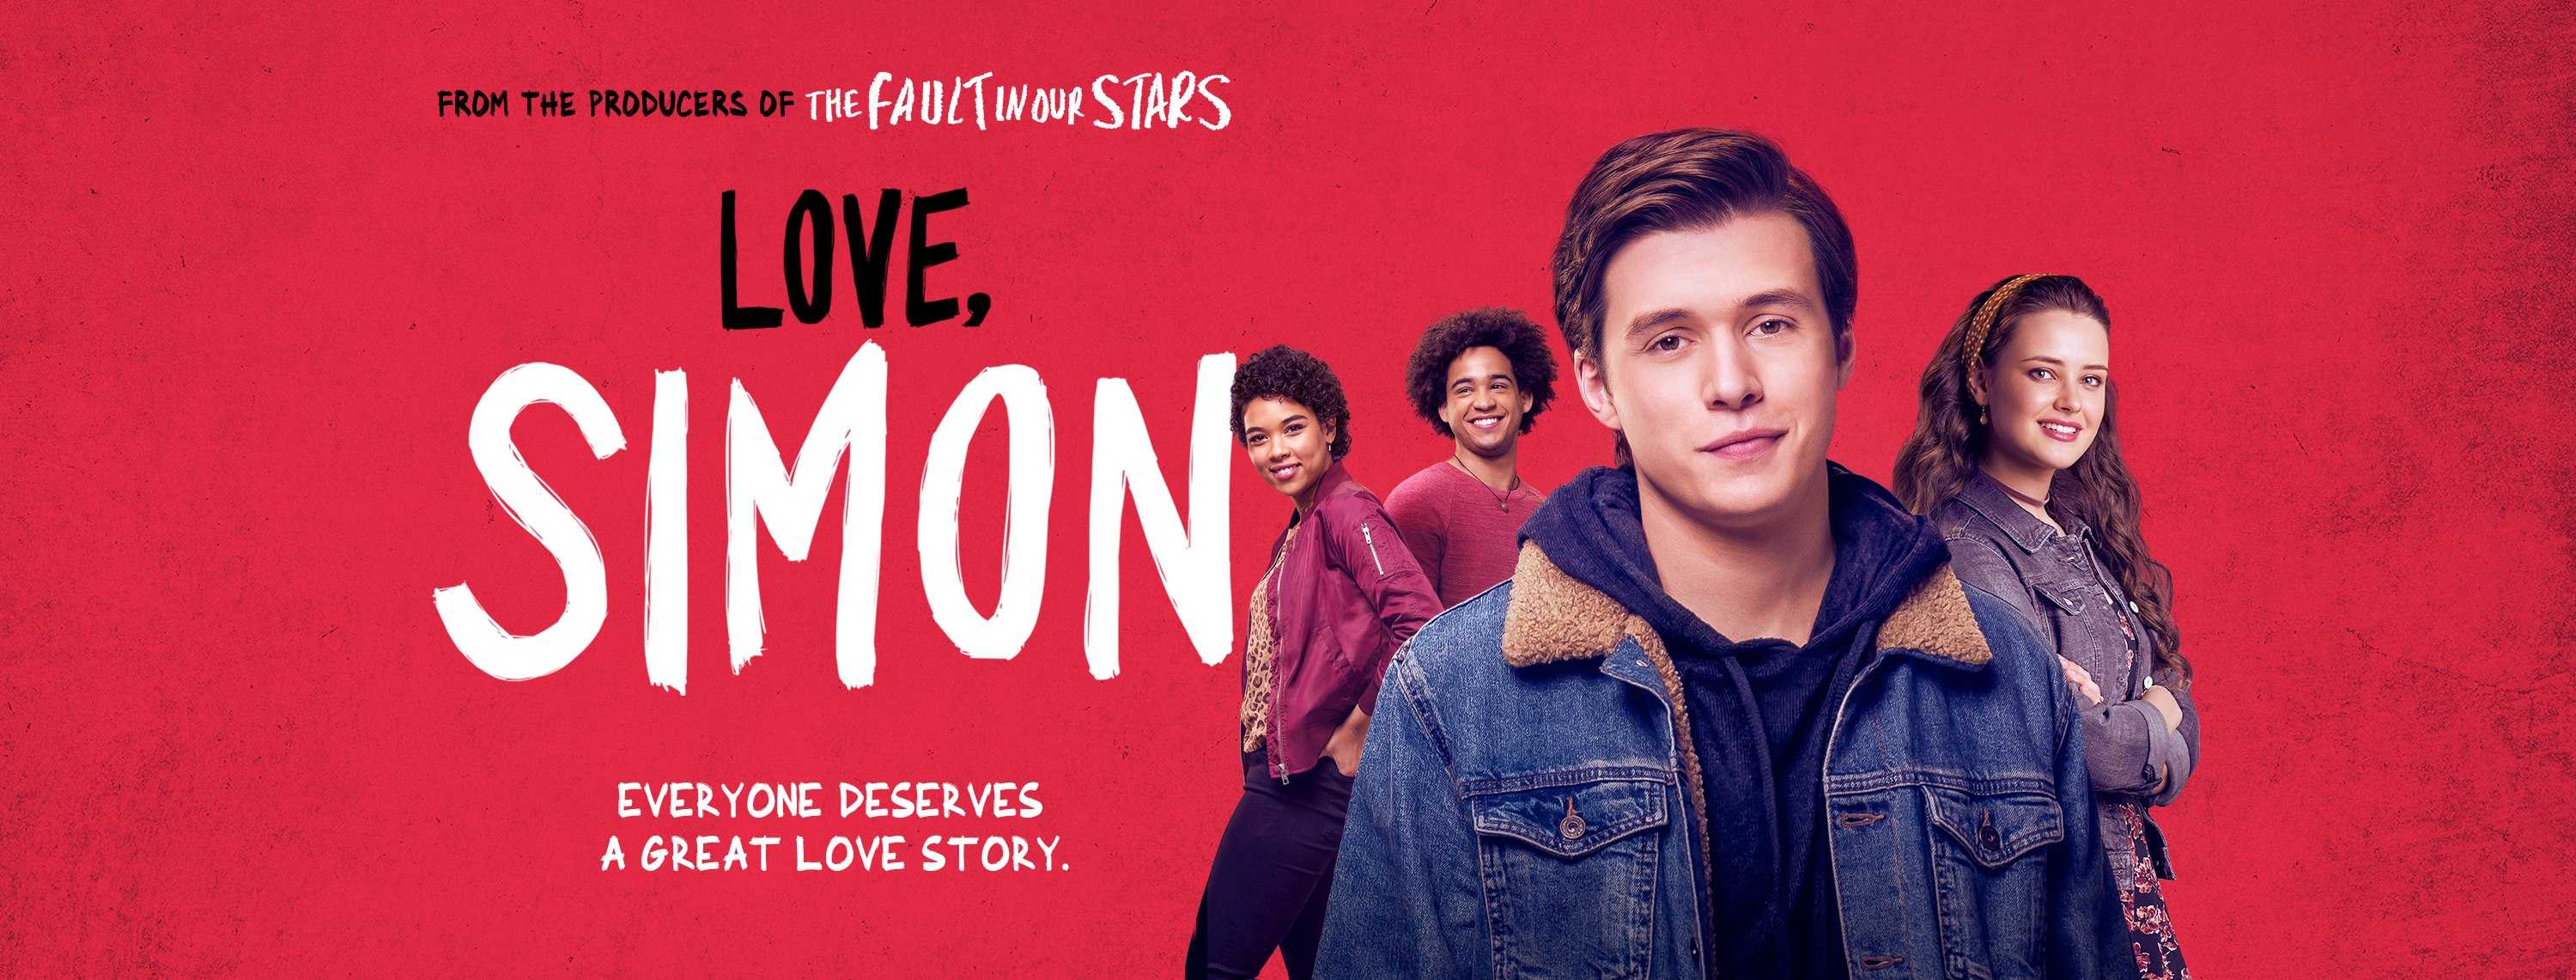 """""""Love, Simon"""" Largely Unoriginal, Delivers Stereotypical Teen Romance"""